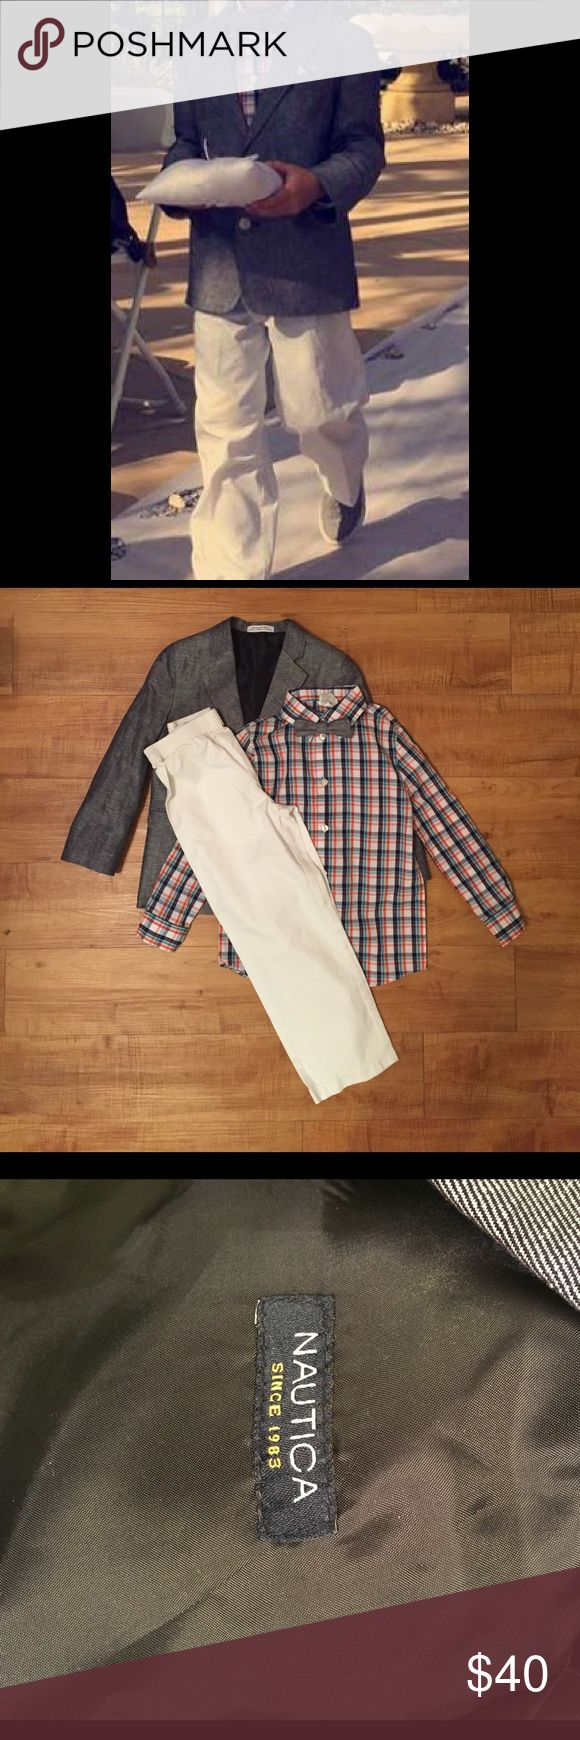 Nautica 4-pc Denim Look Duo Suit Set, Little Boys Great piece perfect for any occasion. Worn only one time by my son for a wedding. No stains still looks brand new! Nautica Matching Sets